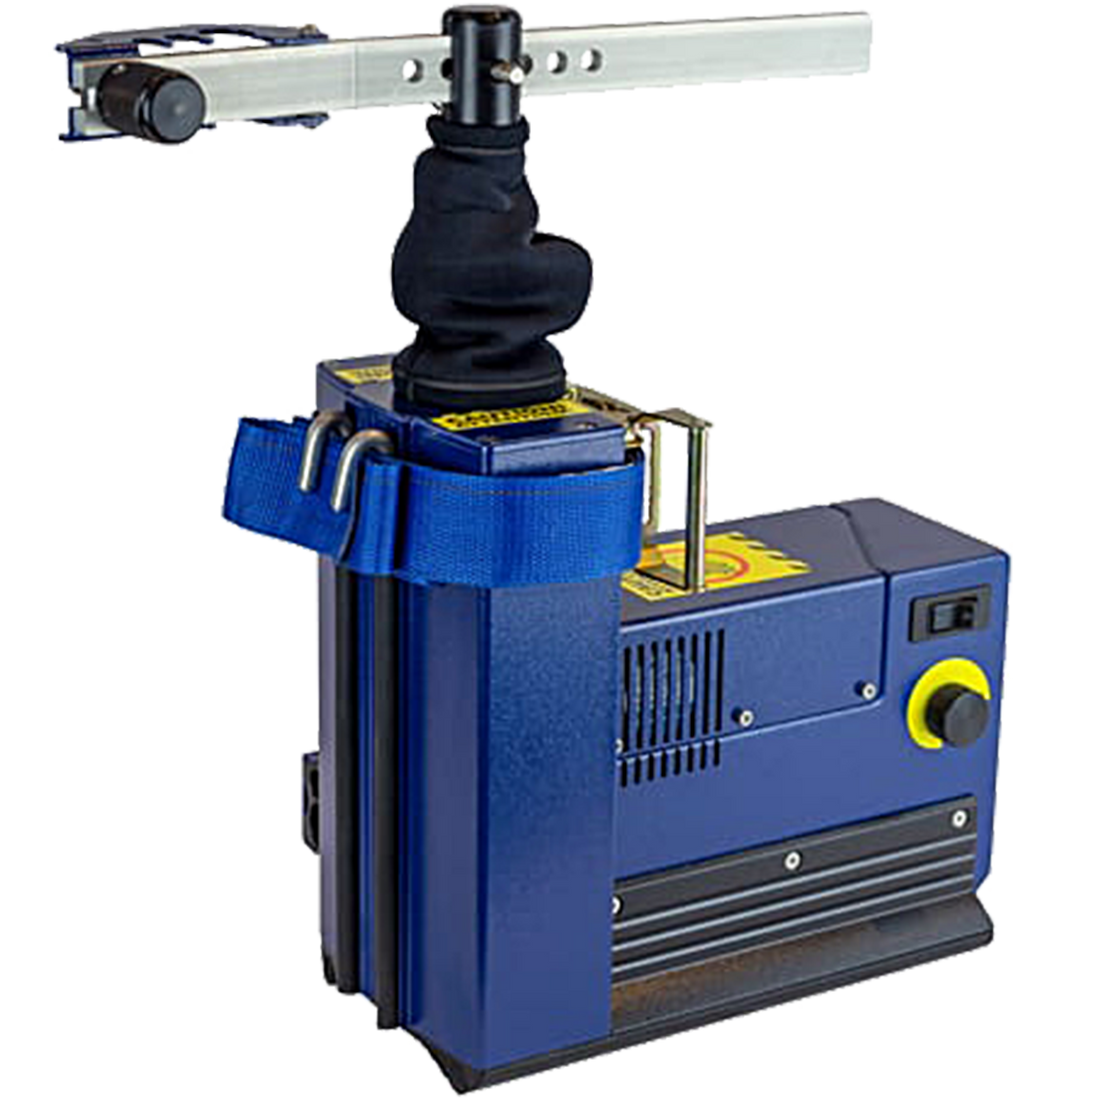 Waterra Hydrolift II pump